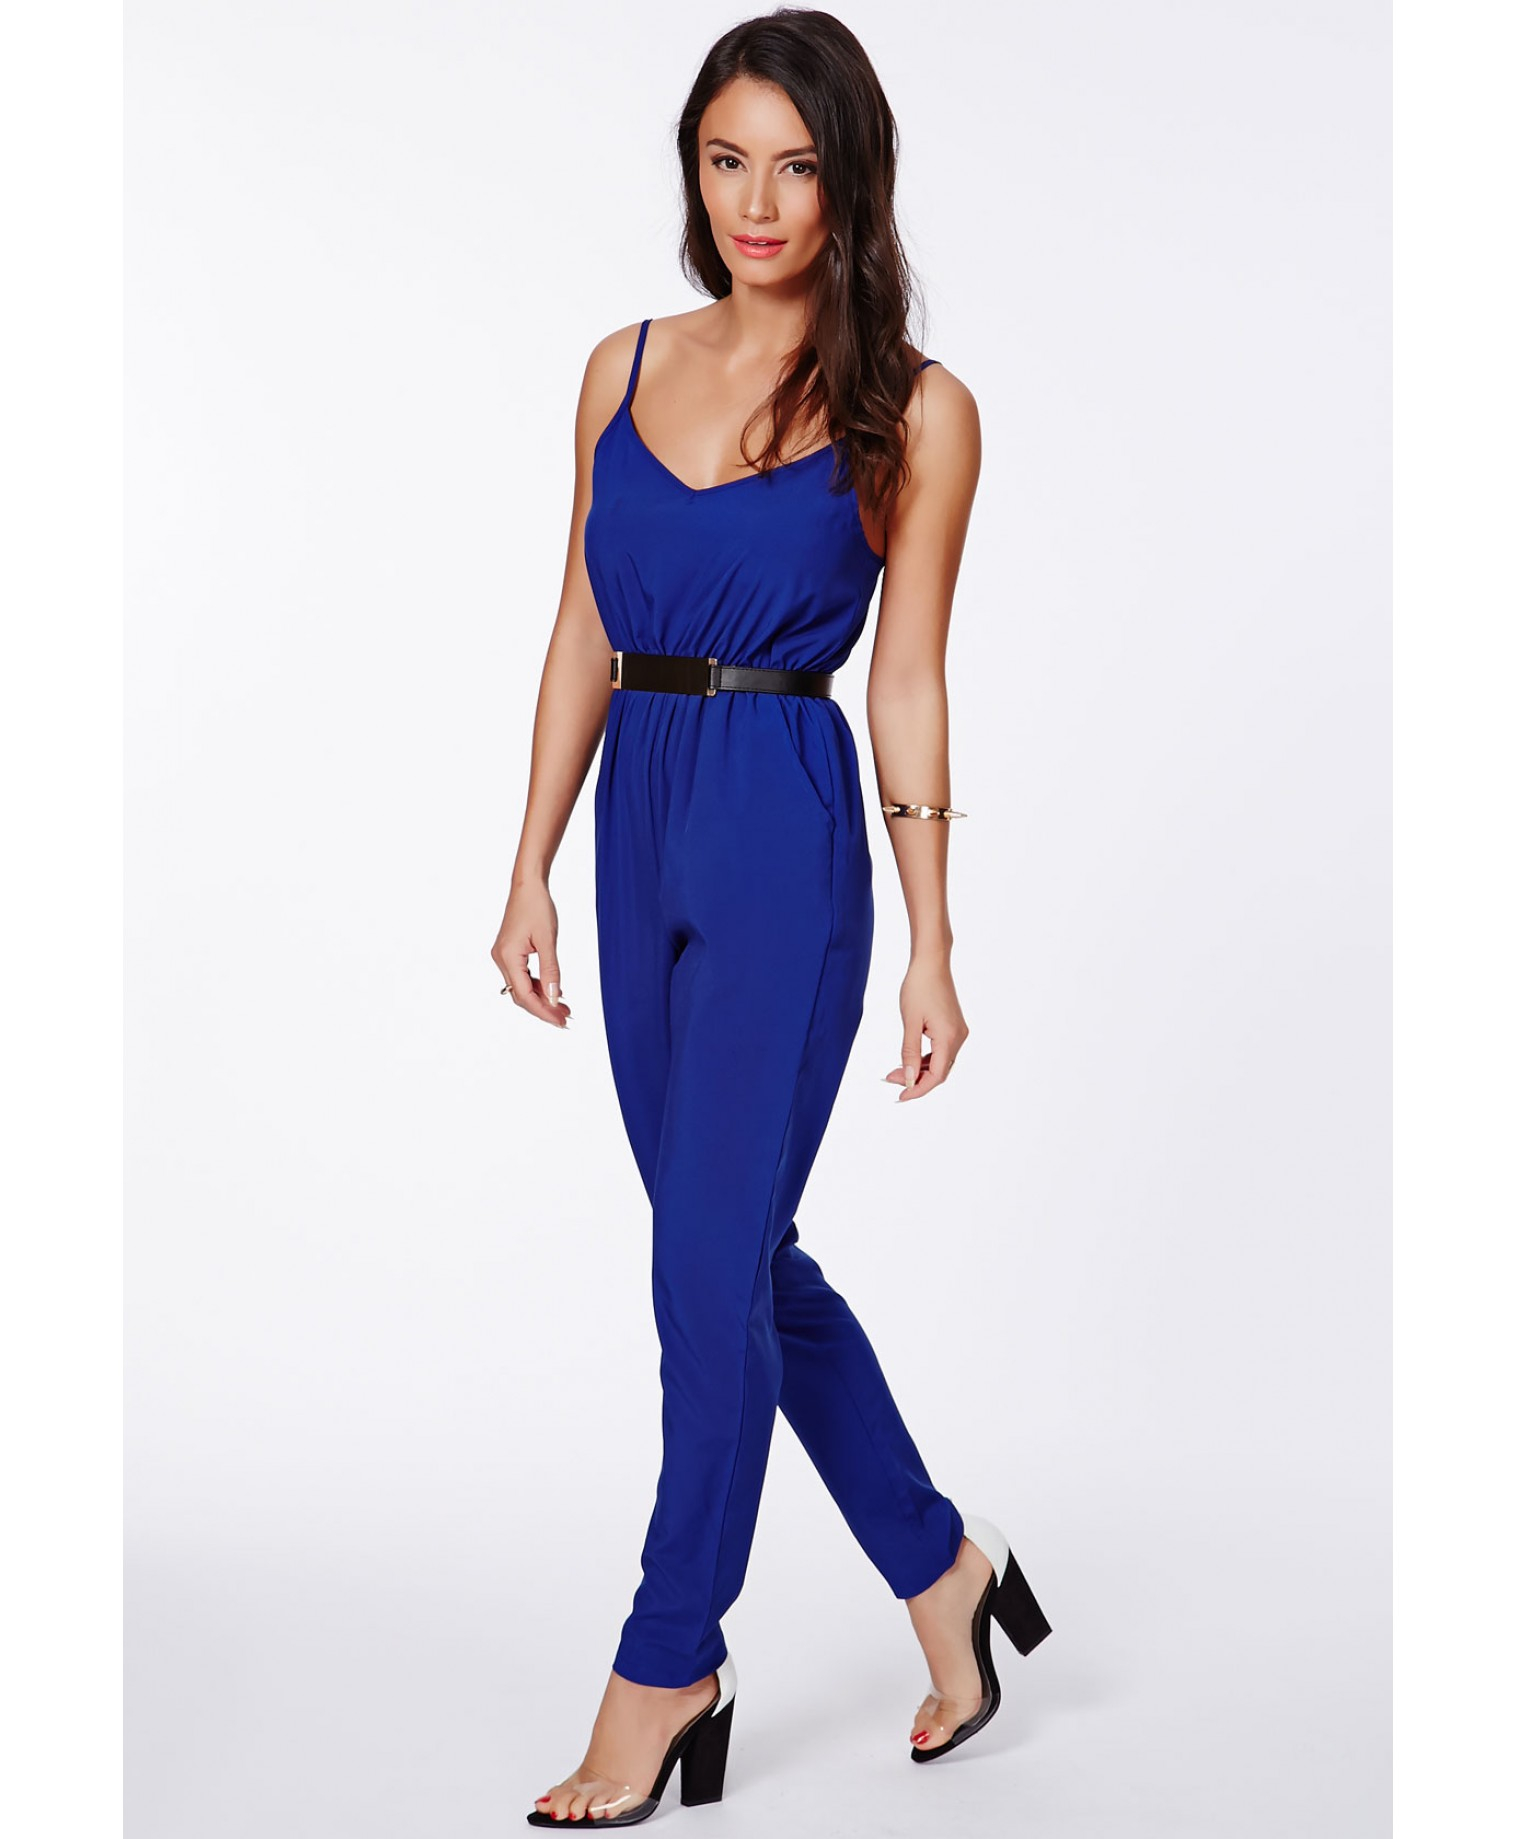 Missguided Kelsey Cobalt Blue Tailored Strappy Jumpsuit in Blue | Lyst